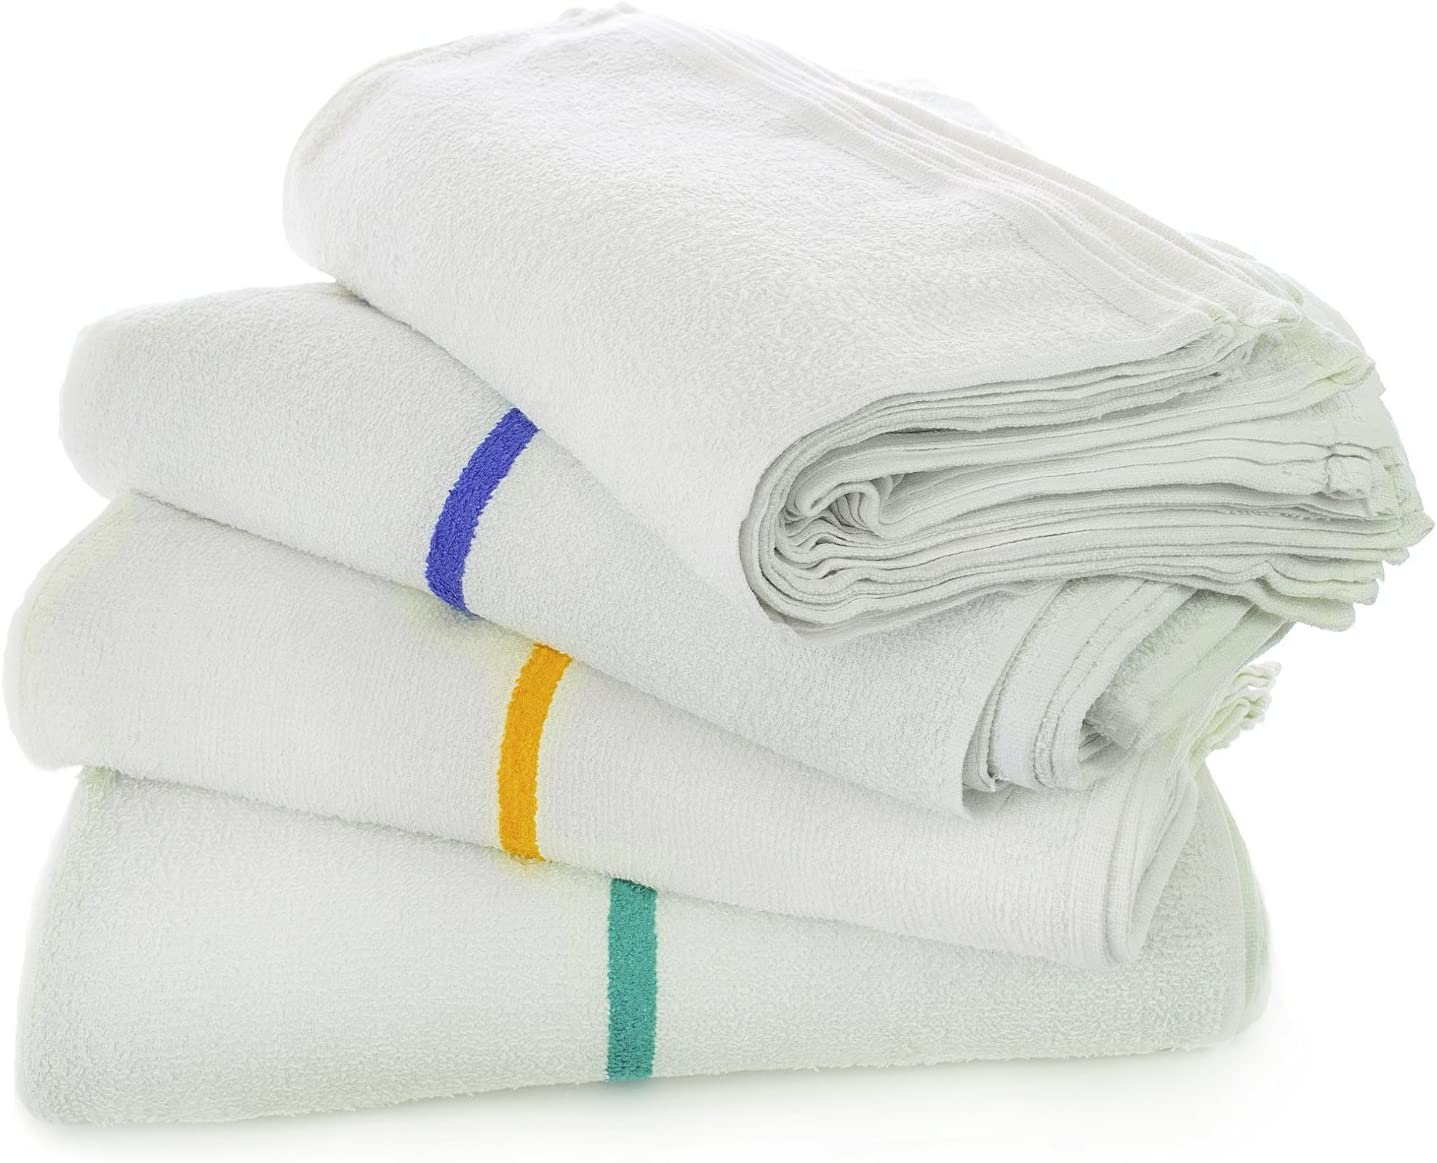 Chakir Turkish Linens Kitchen Industry No. 1 All-Purpose Towels Bar Topics on TV Cotton Mop